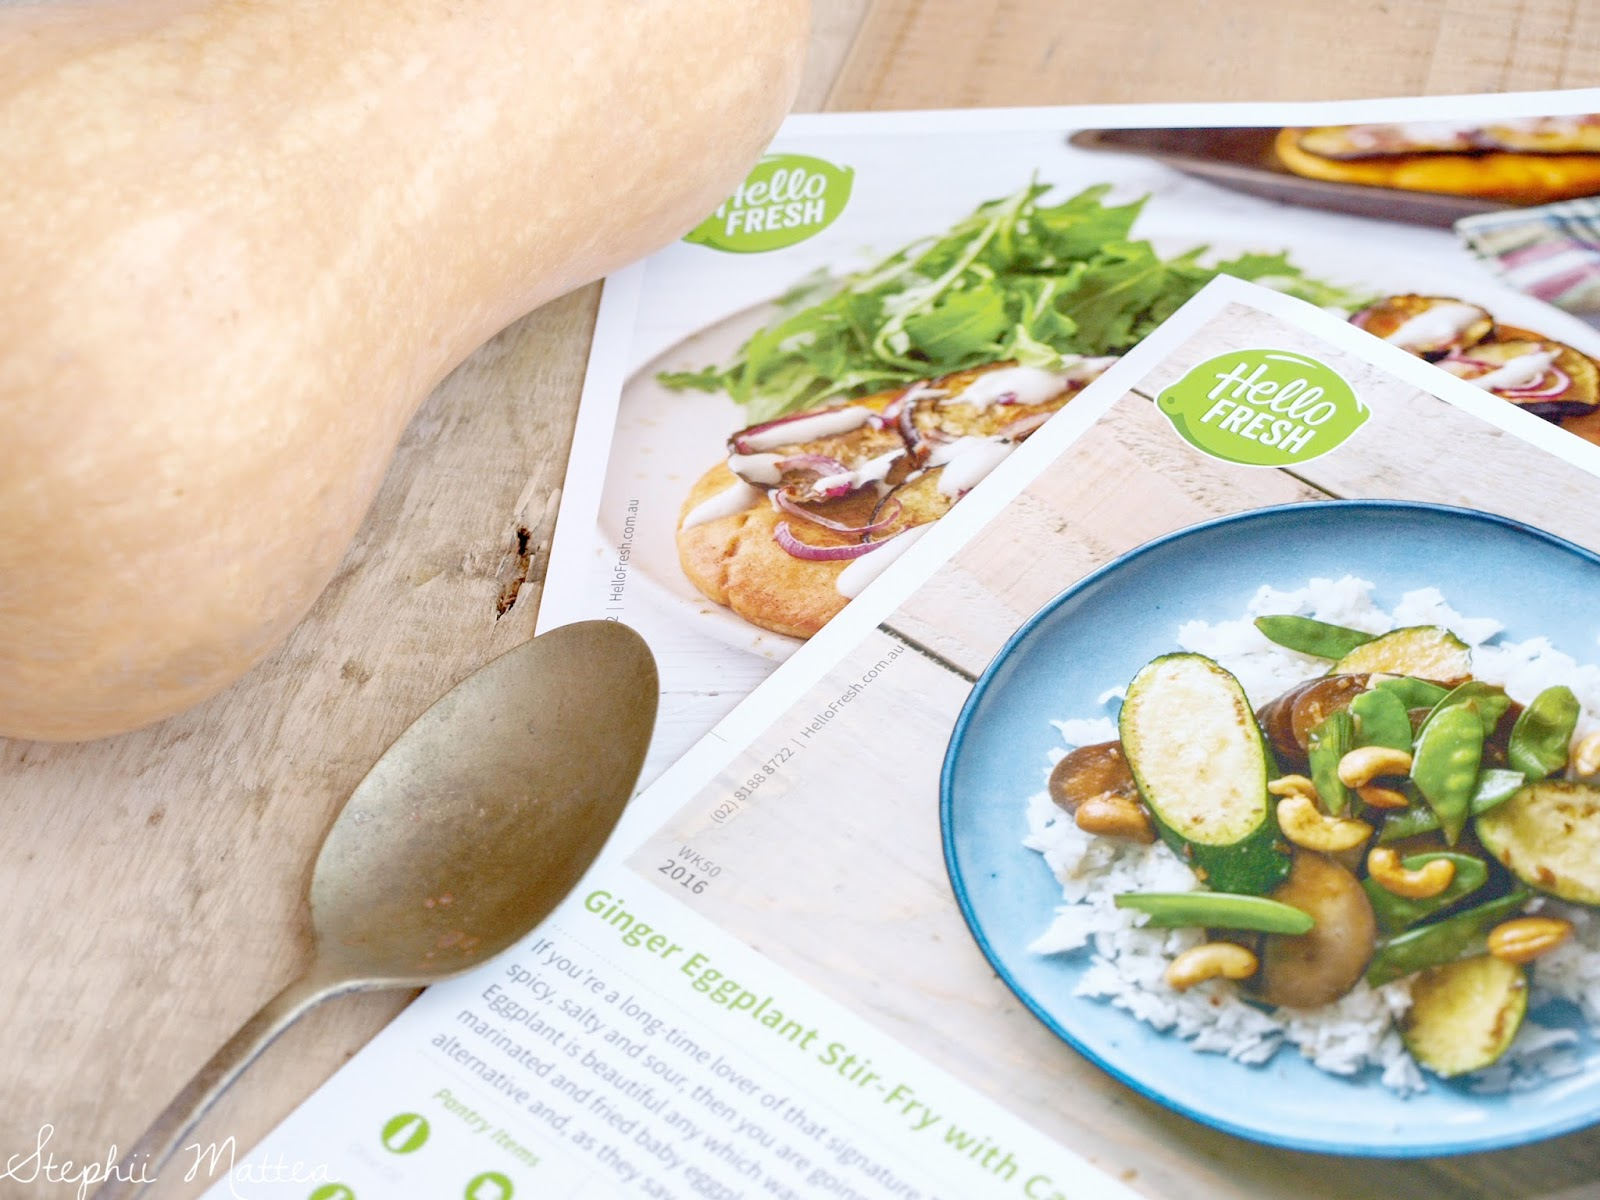 Hellofresh Meal Kit Delivery Service  Savings Coupon Code April 2020